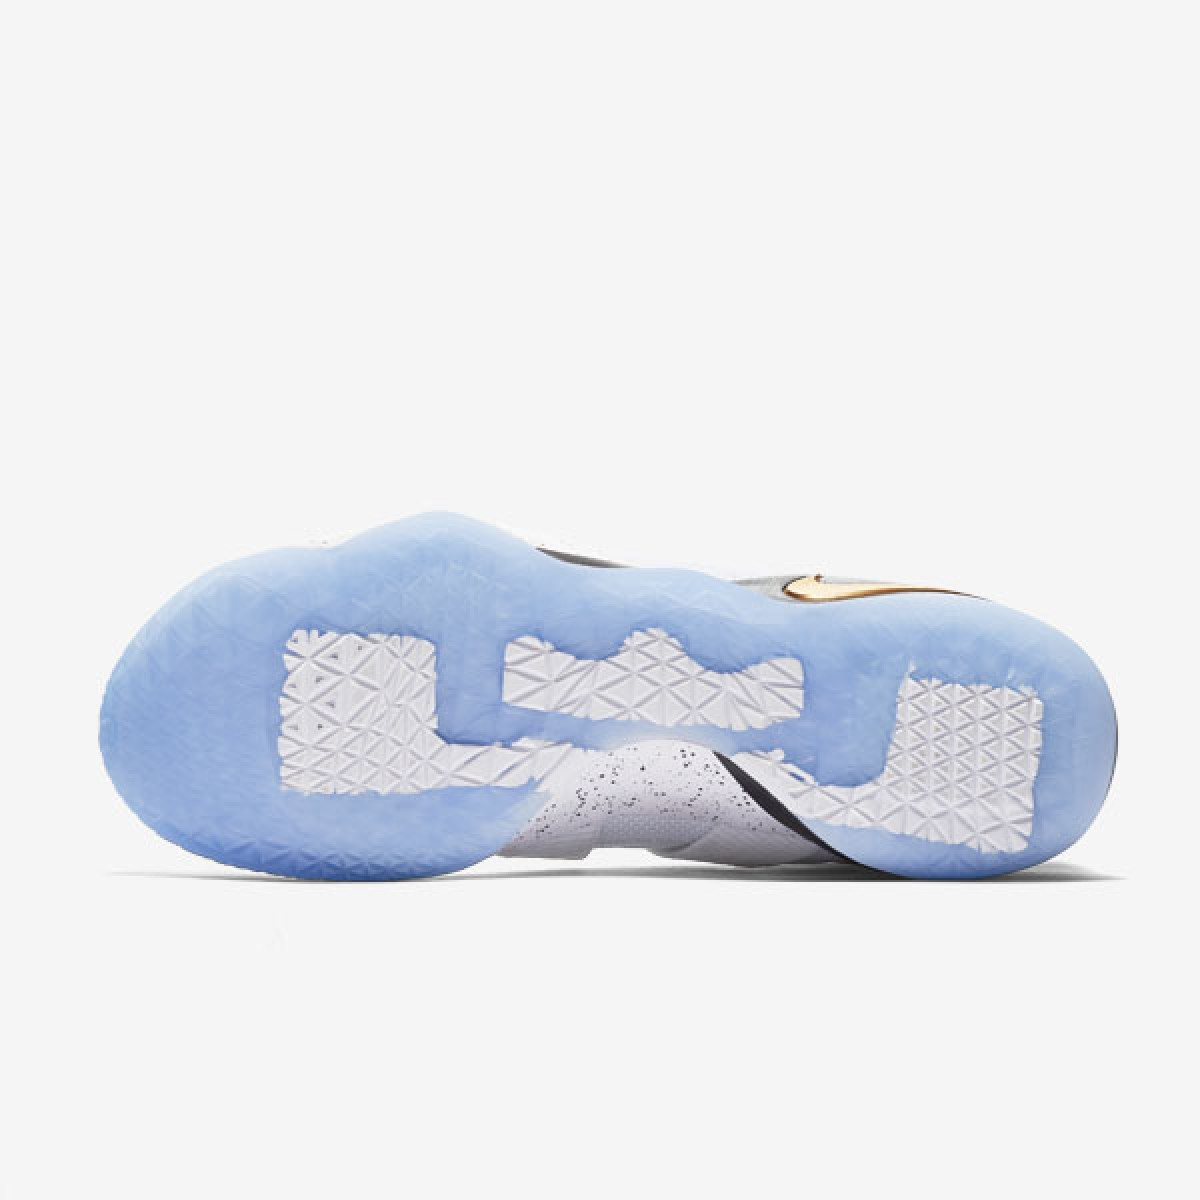 Nike Lebron Soldier XI 'Court General' 897644-101